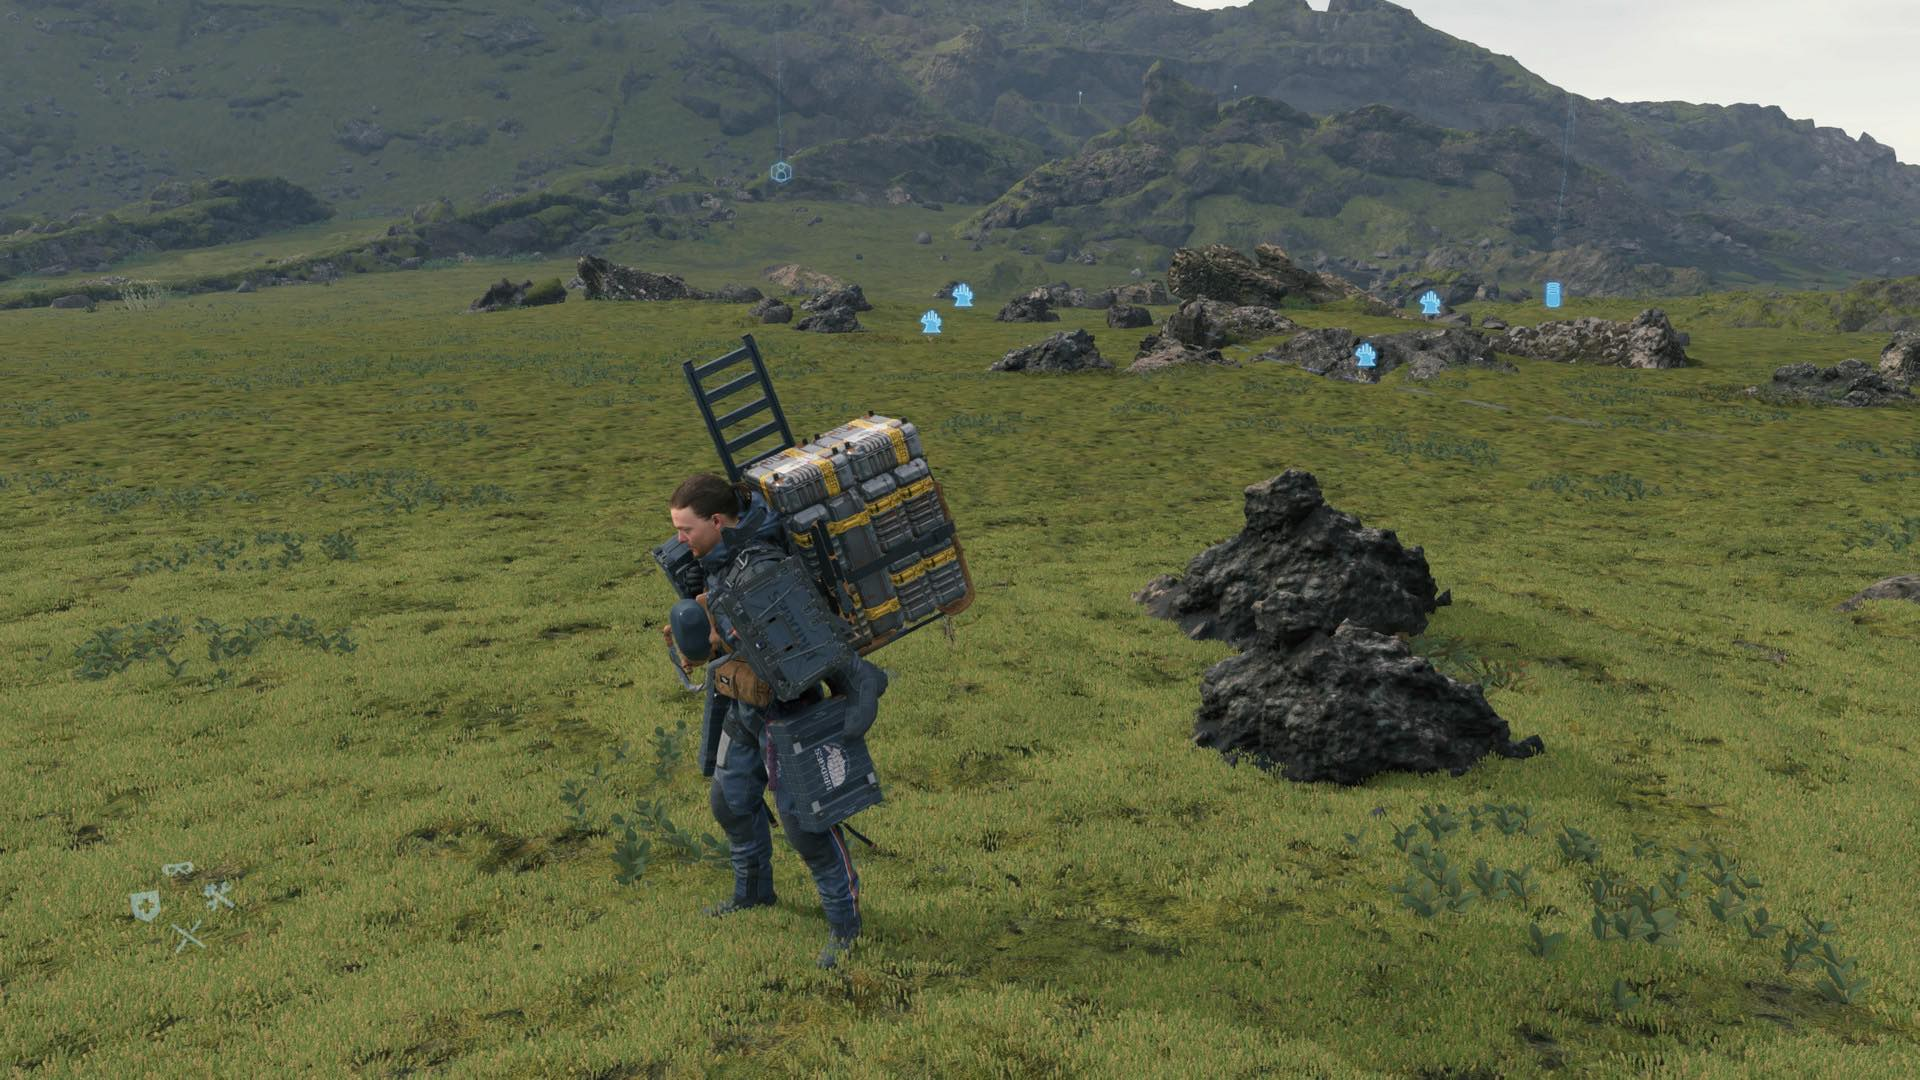 death stranding full trophy listt, Death Stranding trophy list shows easy but time-consuming Platinum (Major Spoilers), Gadget Pilipinas